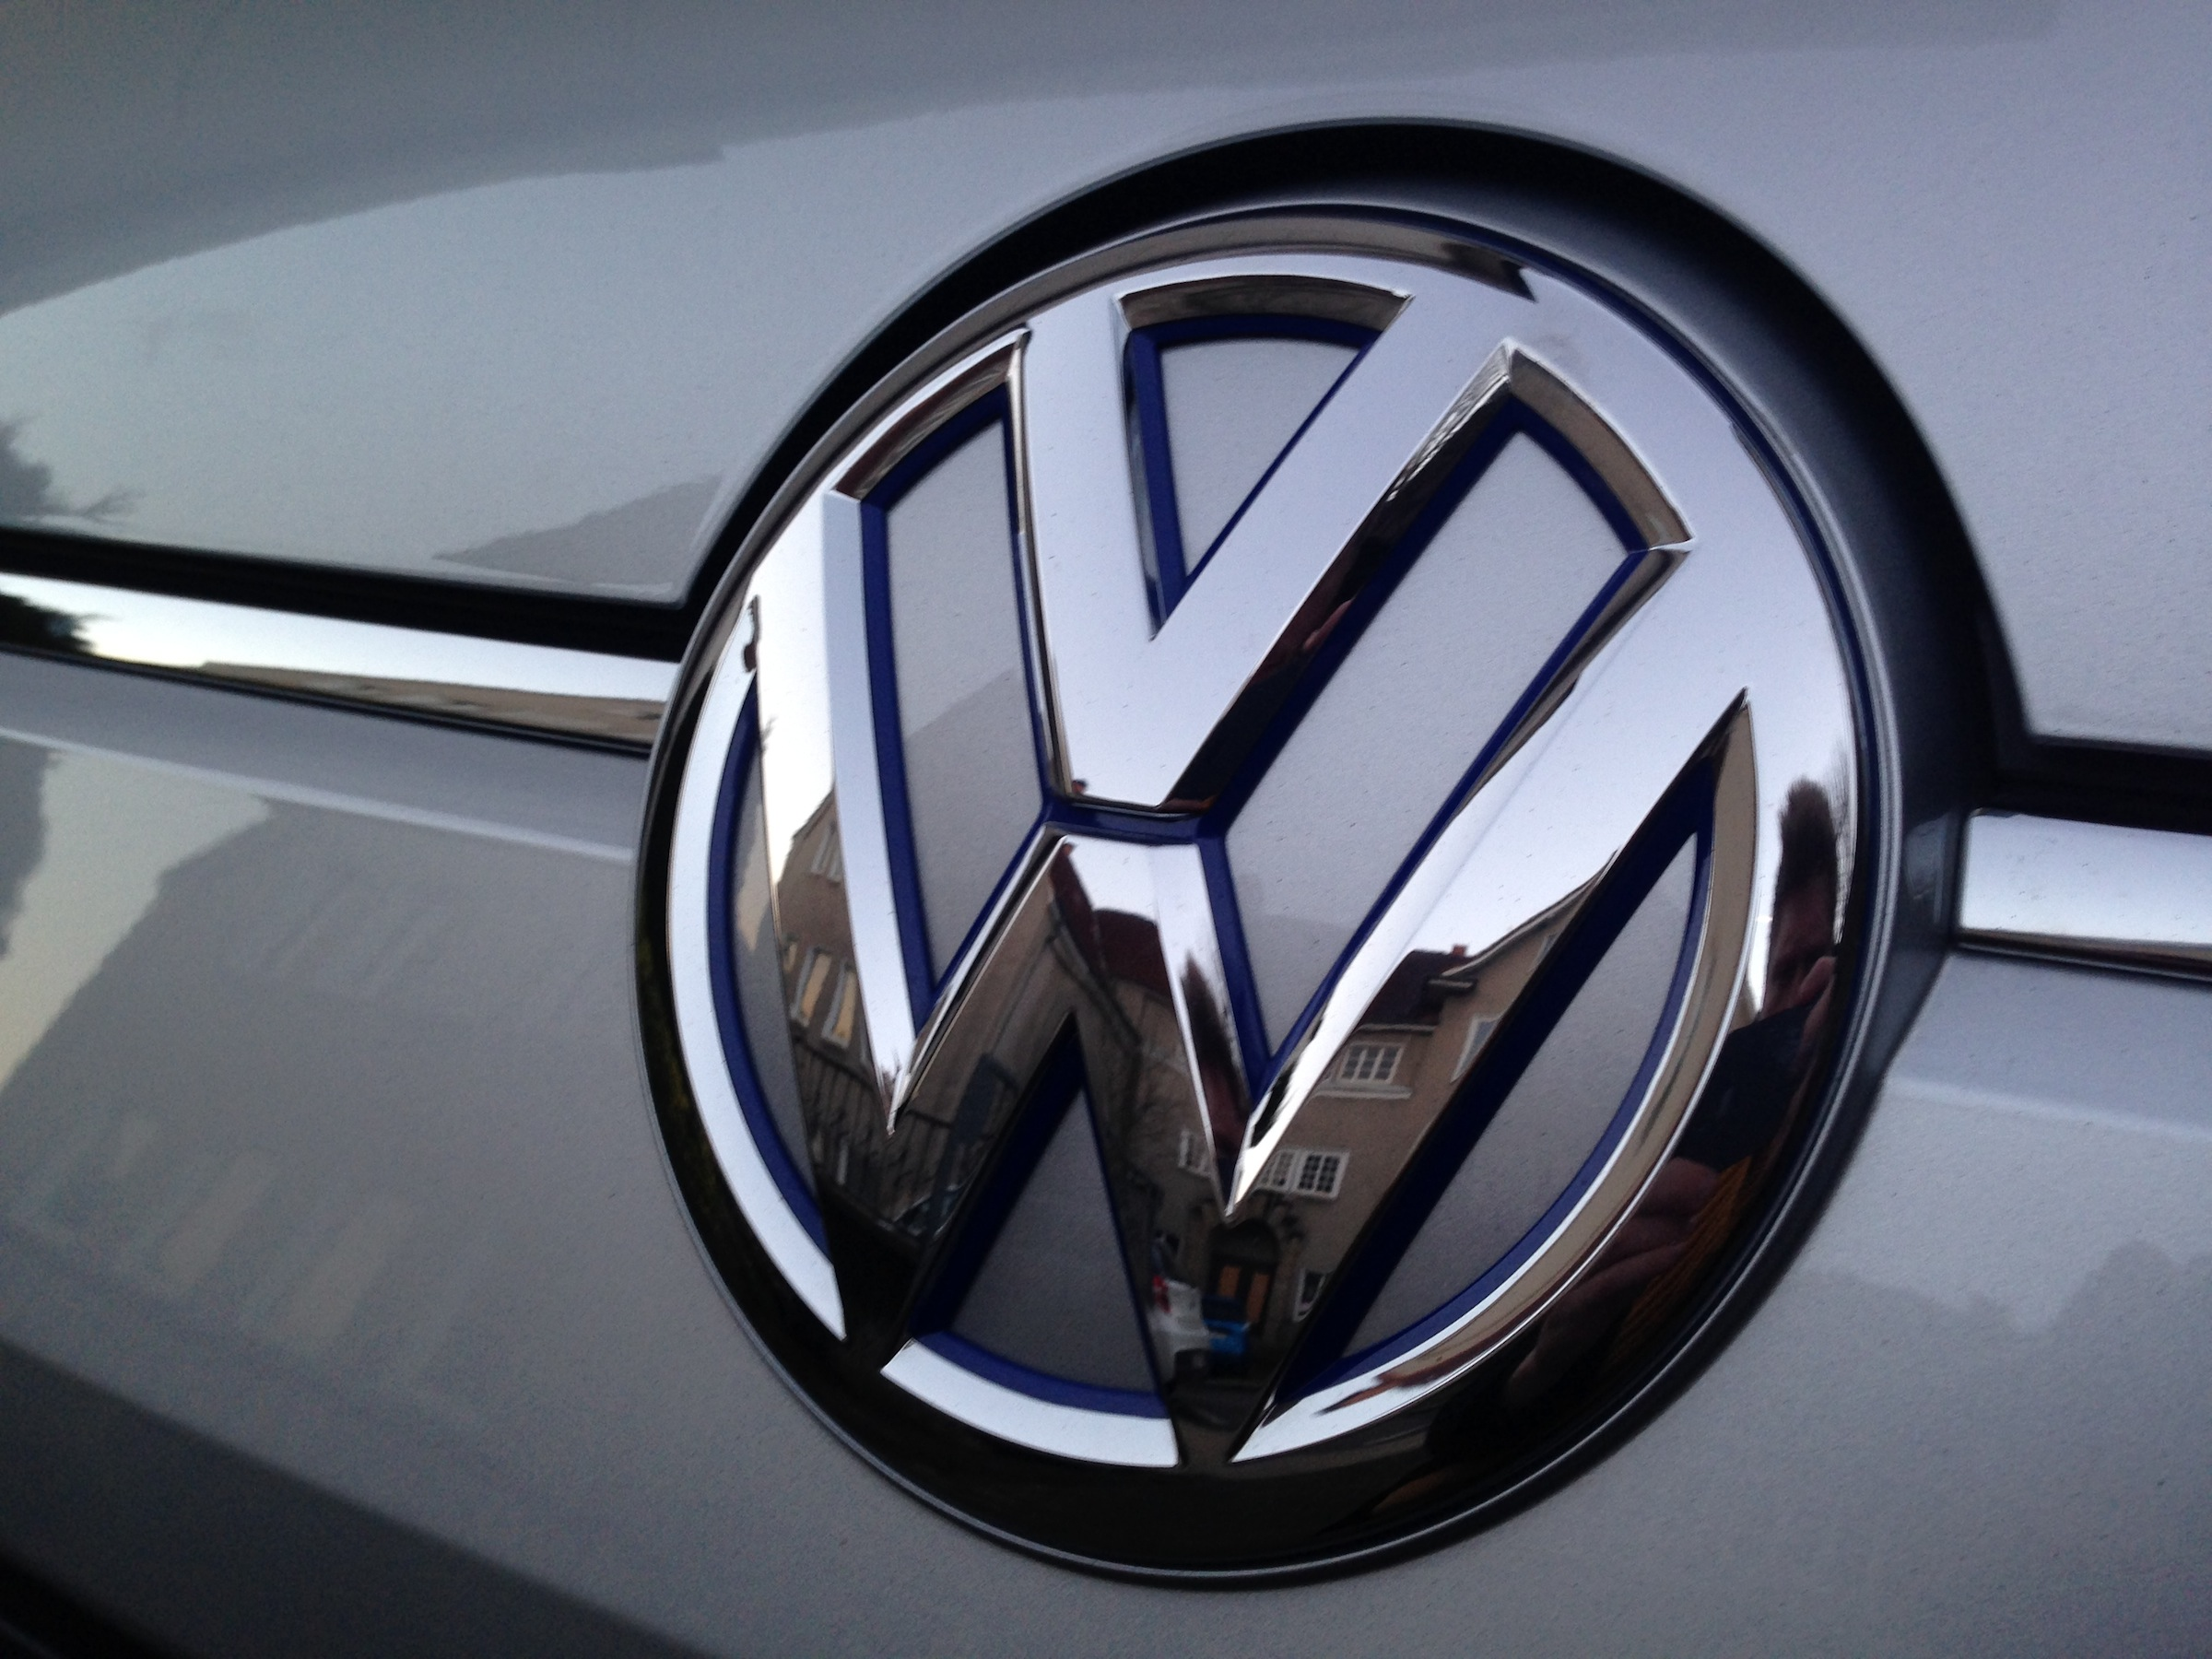 Volkswagen Logo Volkswagen Car Symbol Meaning And History Car Brands Car Logos Meaning And Symbol